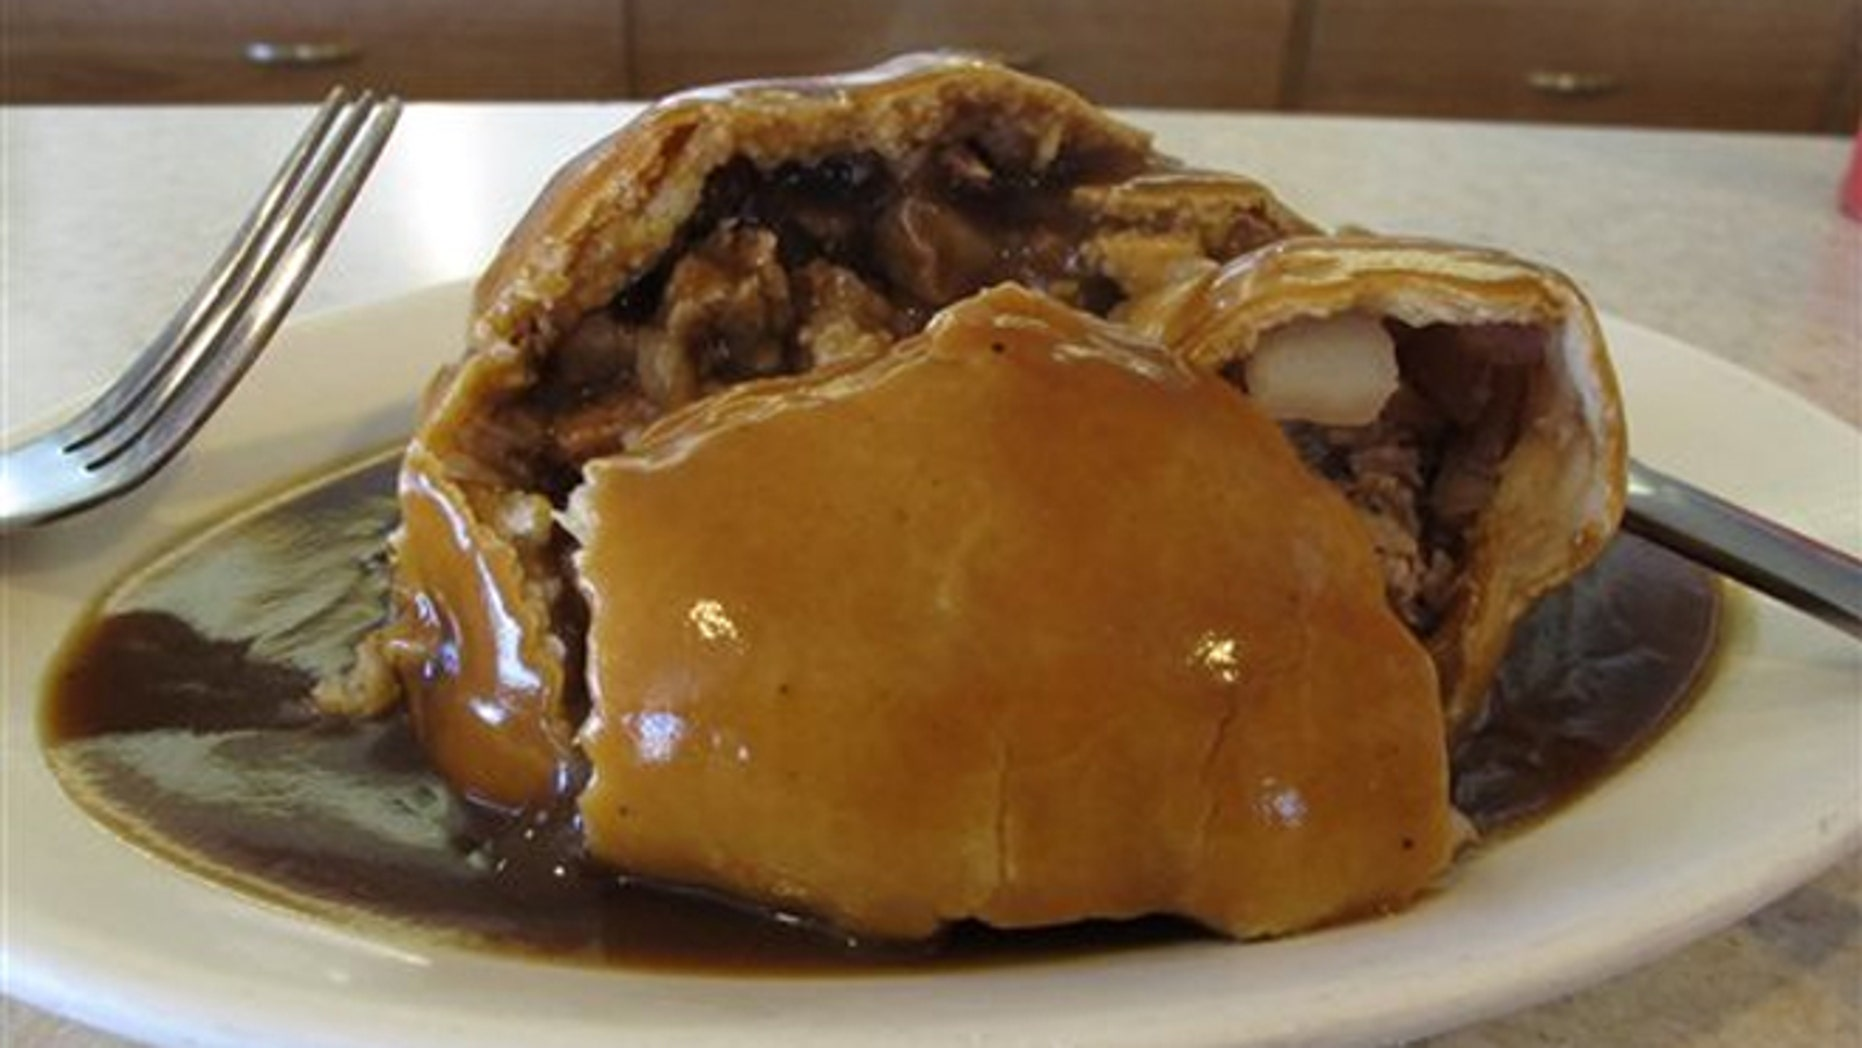 July 20, 2013:A meat-filled pasty with gravy from Joe's Pasty Shop in Butte, Mont.